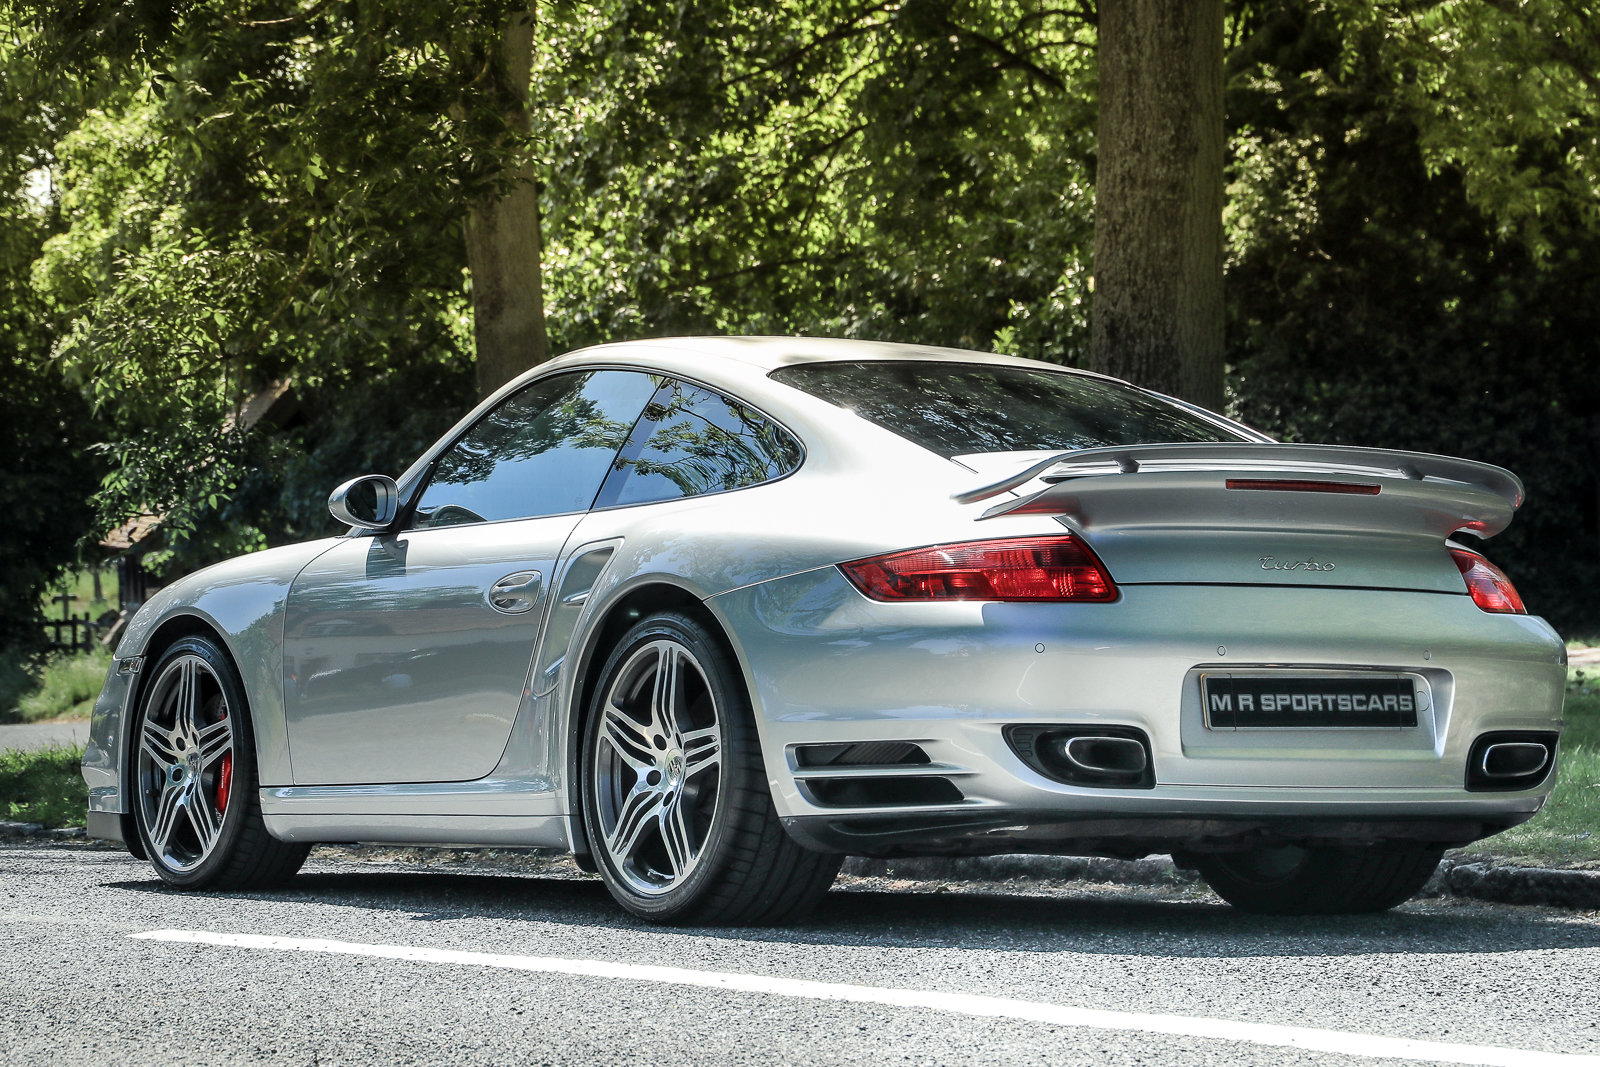 2009 Ultra Rare Porsche 911 Turbo 997 Gen 1.5 Manual Coupe For Sale (picture 2 of 6)